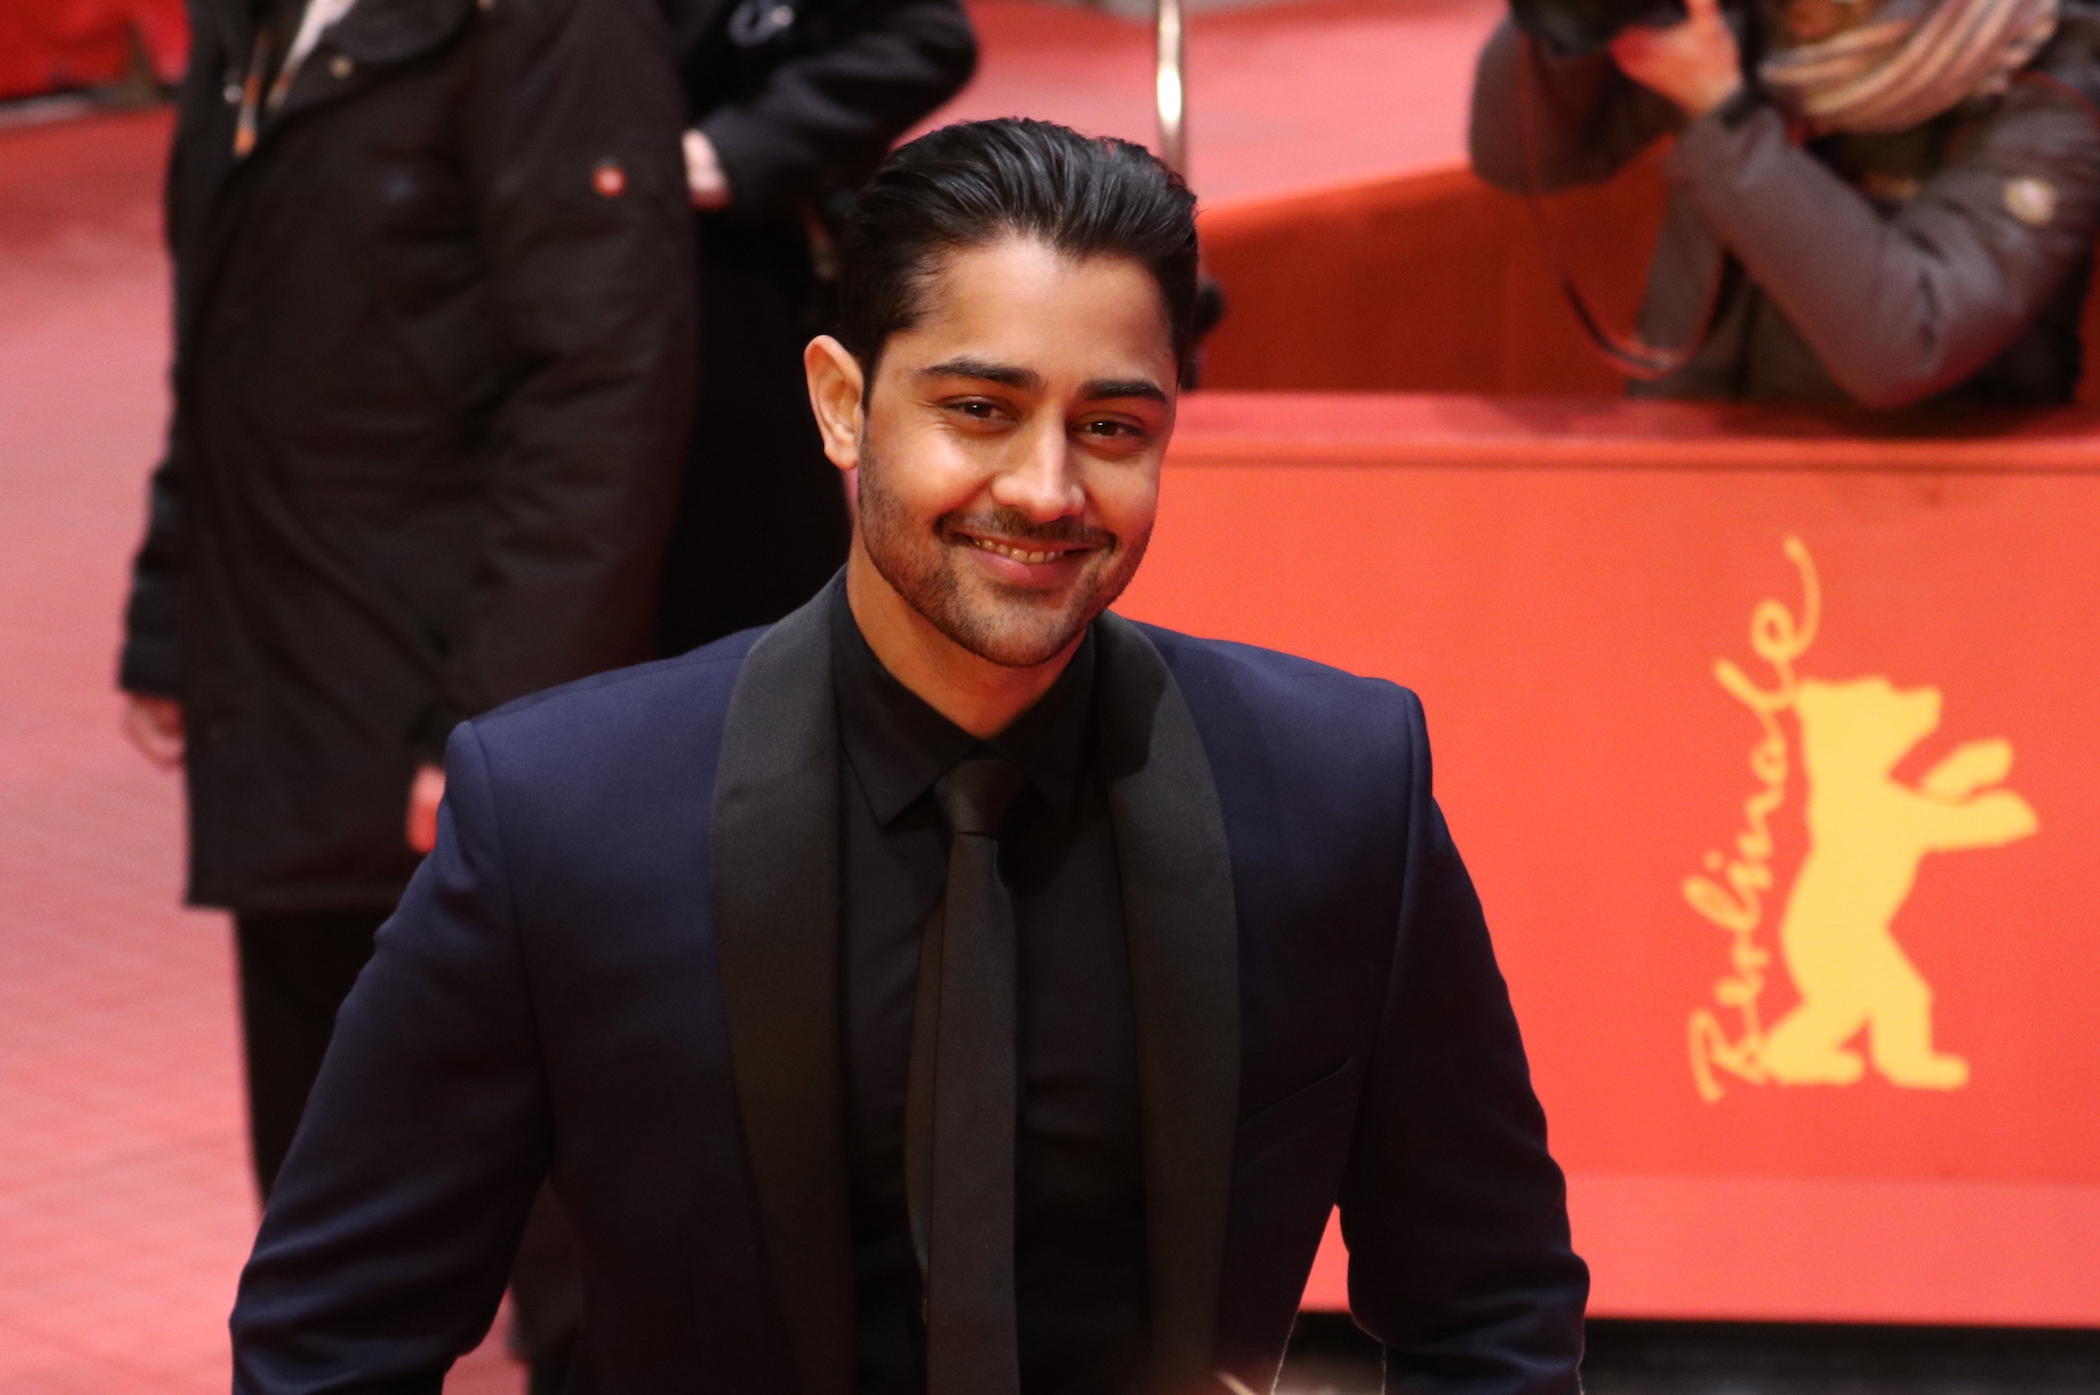 Berlino 2017: Manish Dayal sul red carpet di Viceroy's House